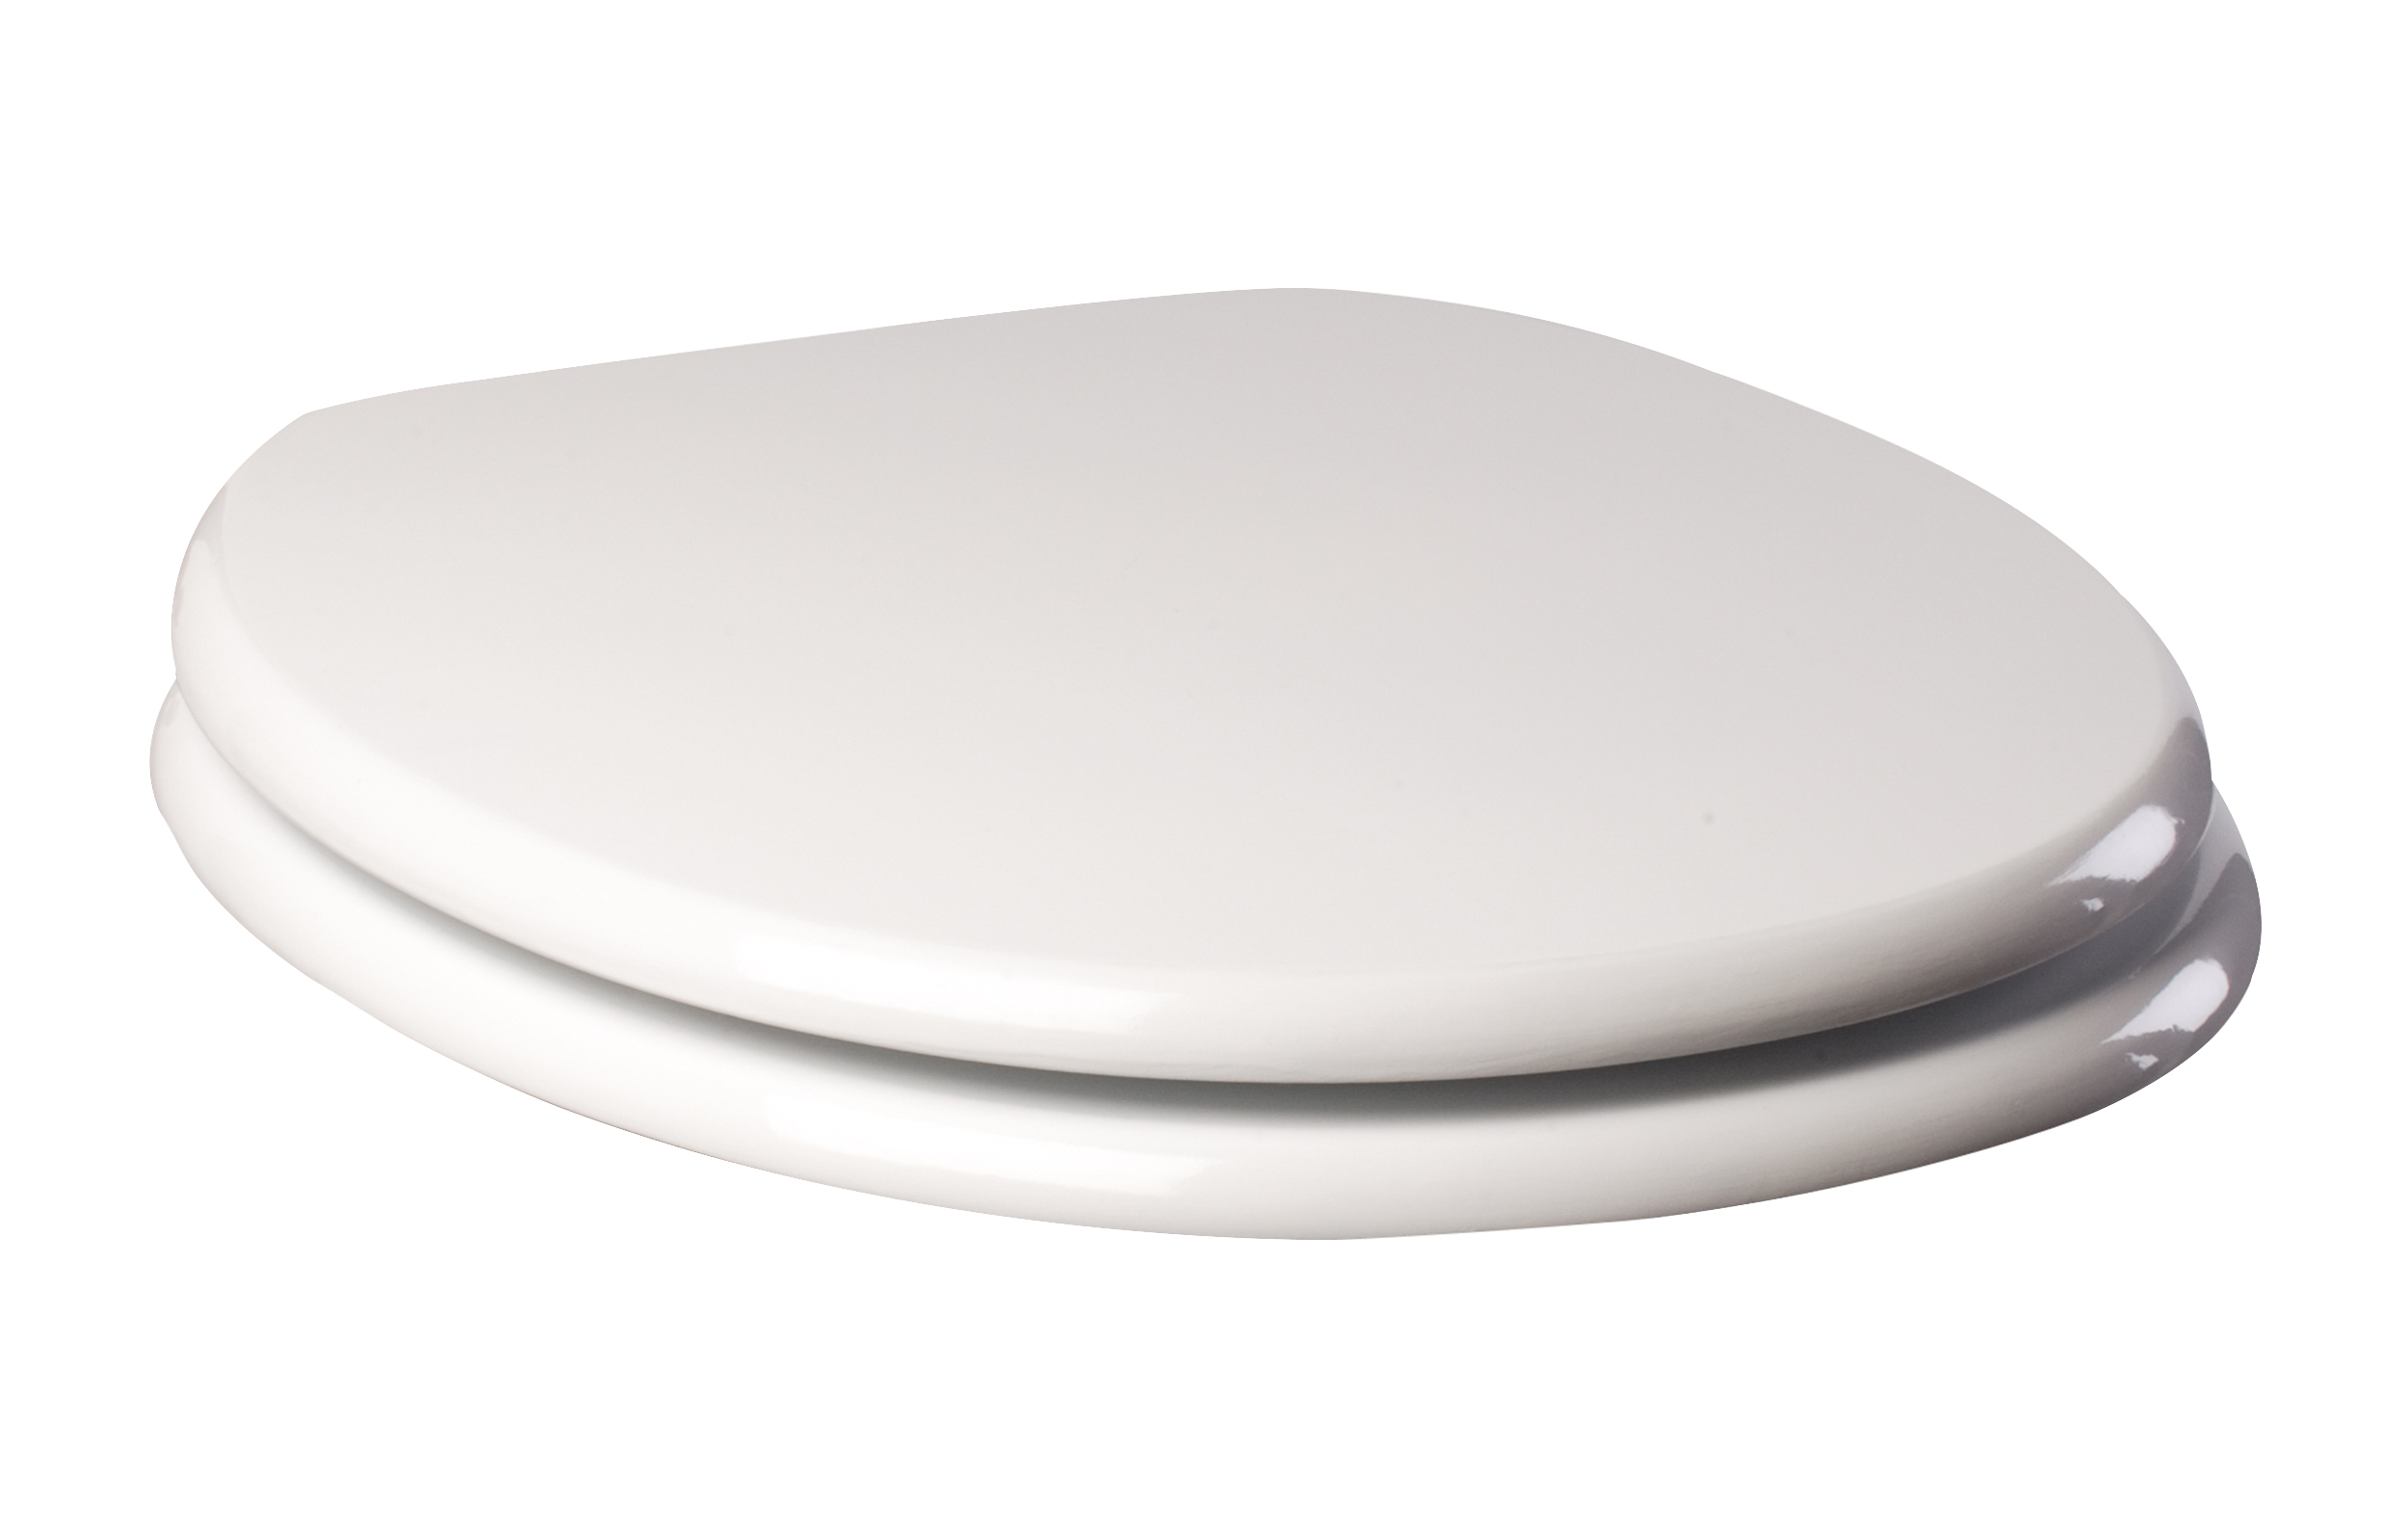 euroshowers moulded toilet seat white